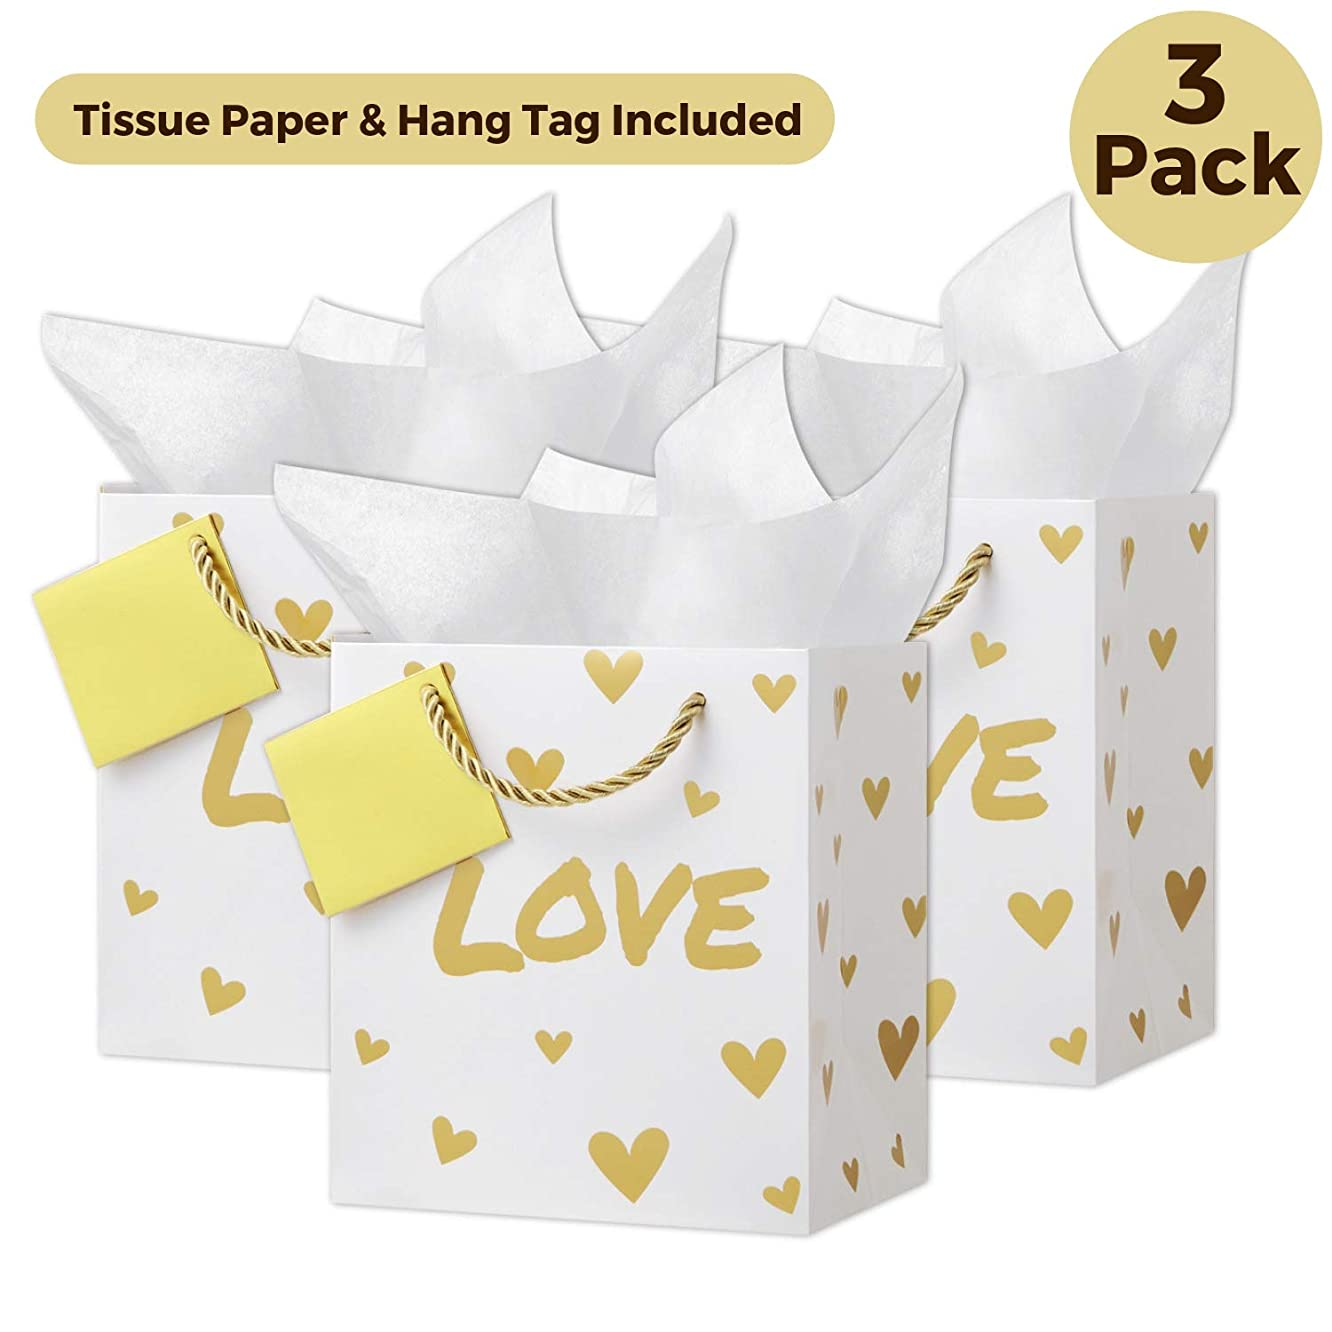 Premium Metallic Gold Foil Bridesmaid Gift Bags with Handles (Small, 3 Pack, Love), Tissue Paper, Note Tag, Rope Style Handles, for Baby Shower, Bridal Shower, Wedding Gift Bags, Engagement